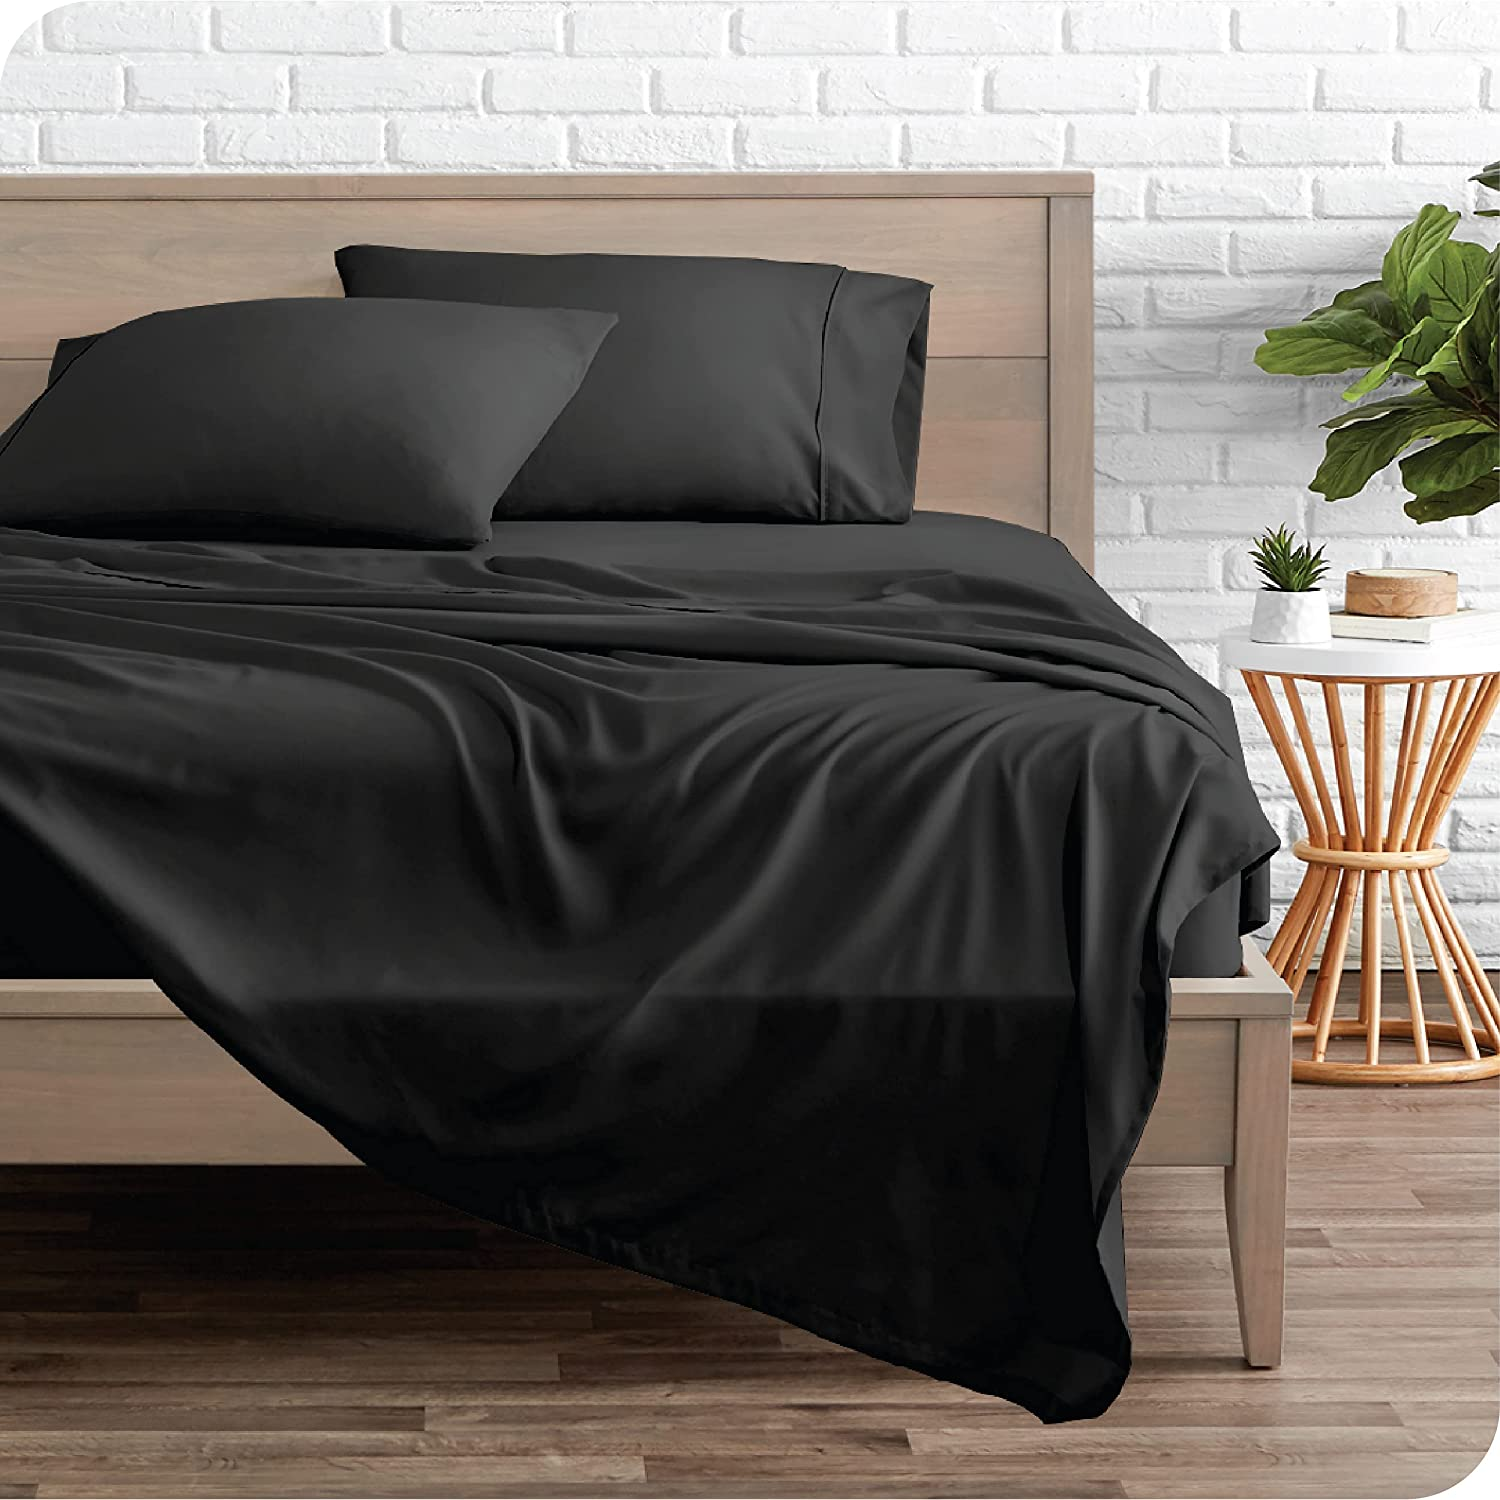 Bare 55% OFF Home Twin Sheet Set - Challenge the lowest price Microfiber S Bed 1800 Ultra-Soft